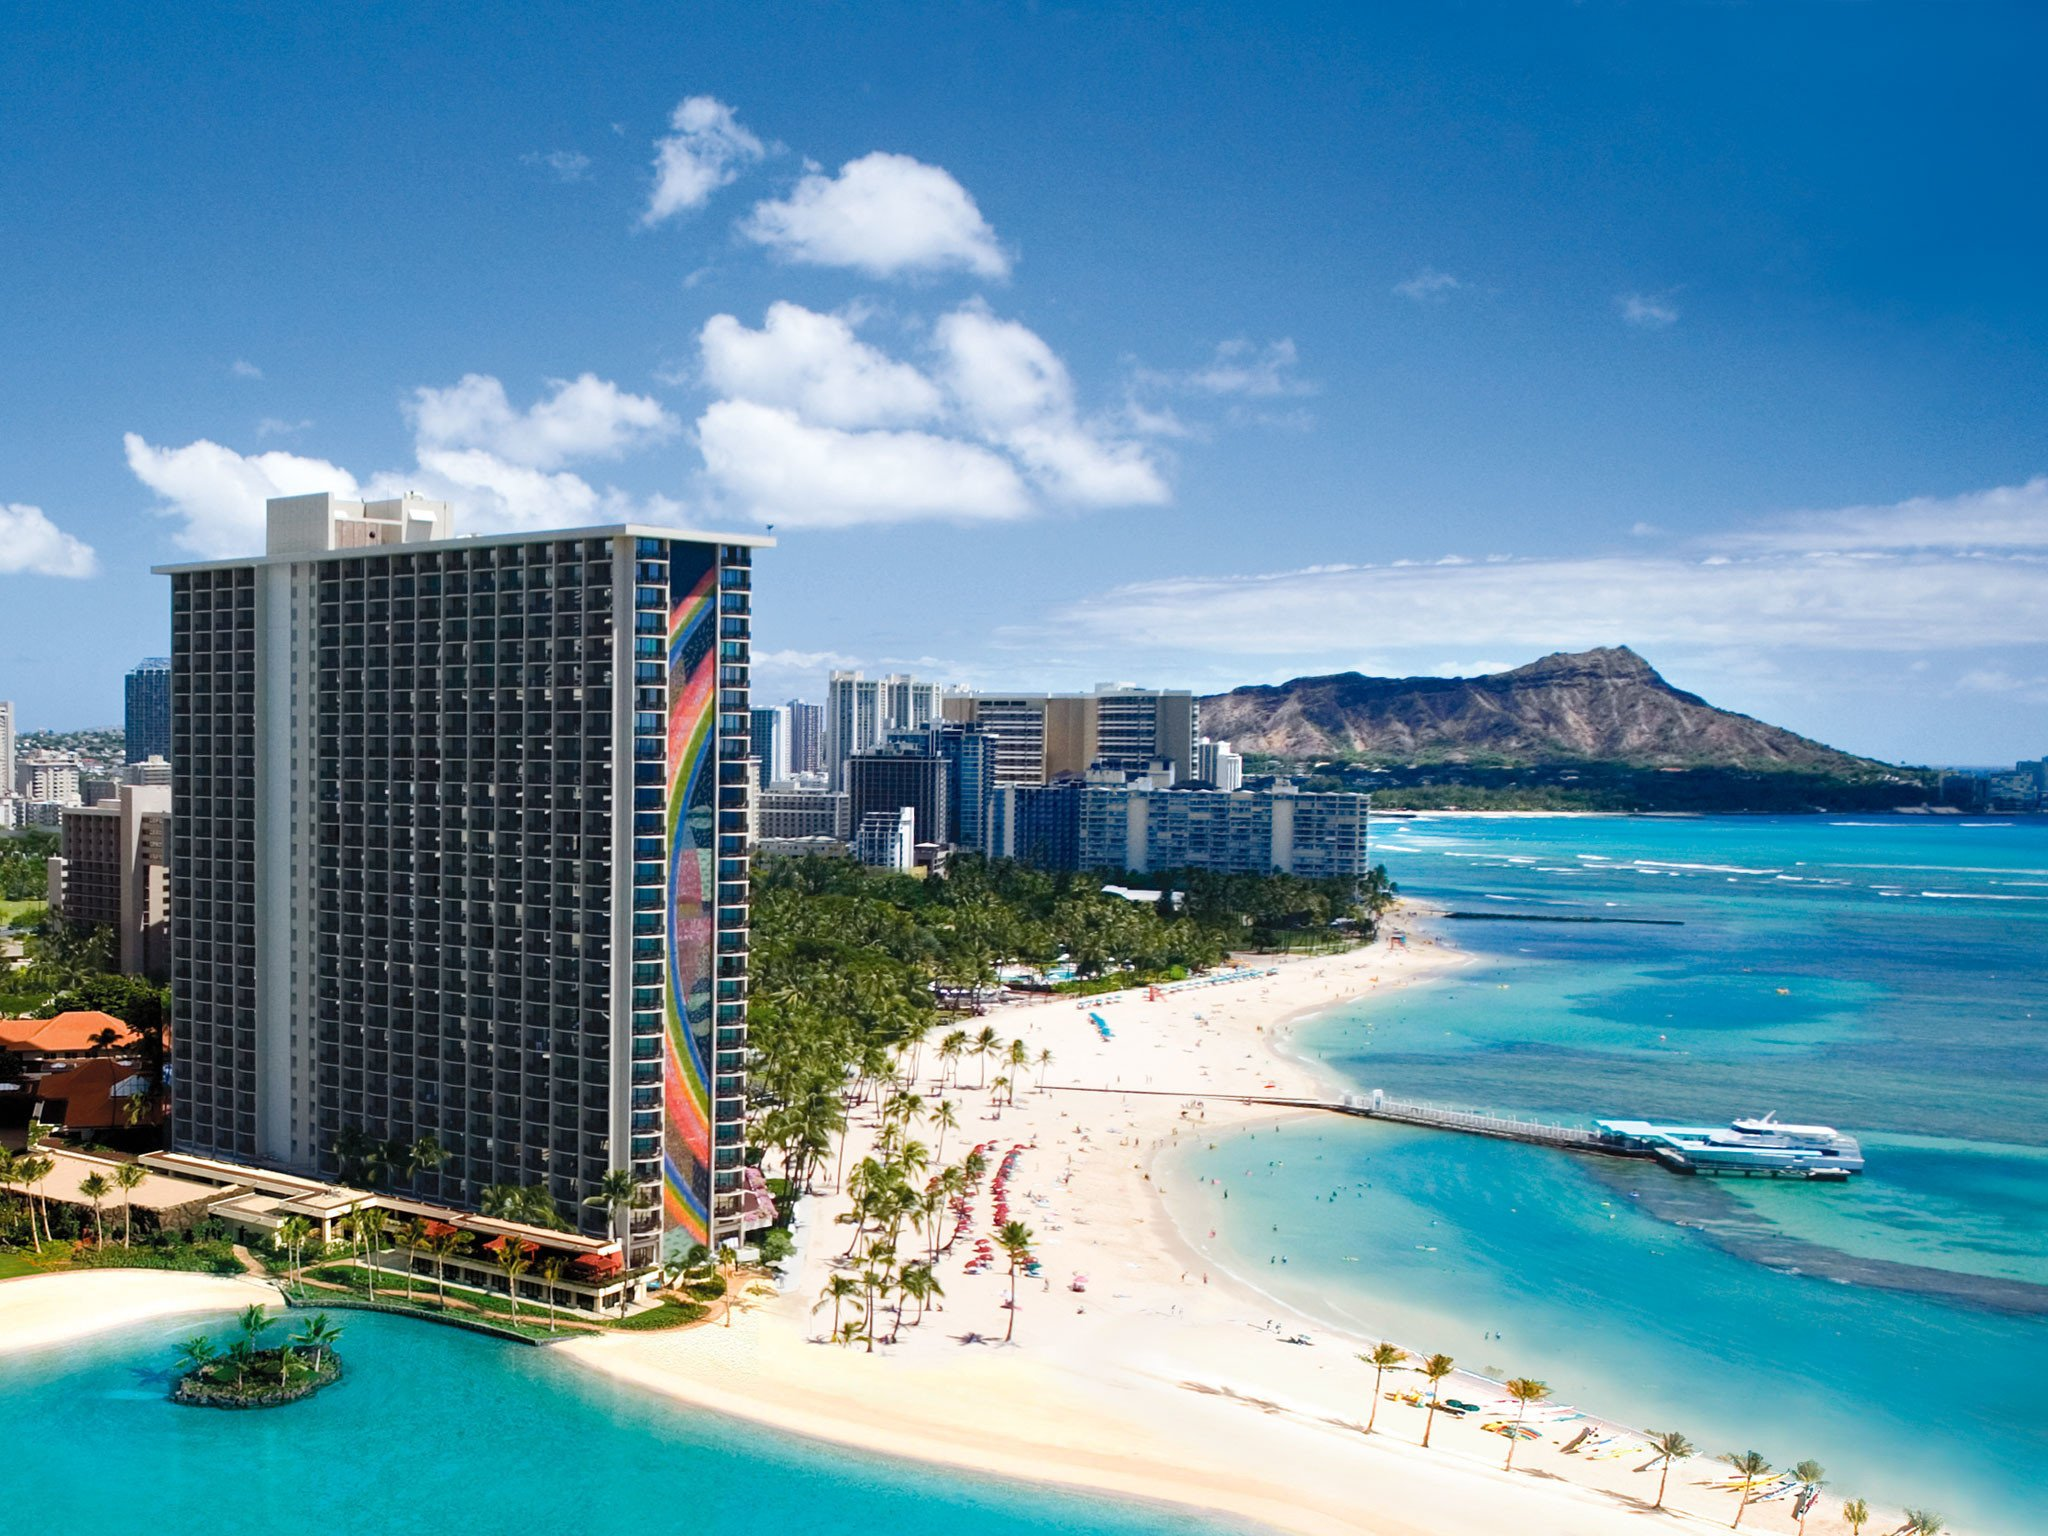 61 Waikiki Beach Wallpapers on WallpaperPlay 2048x1536